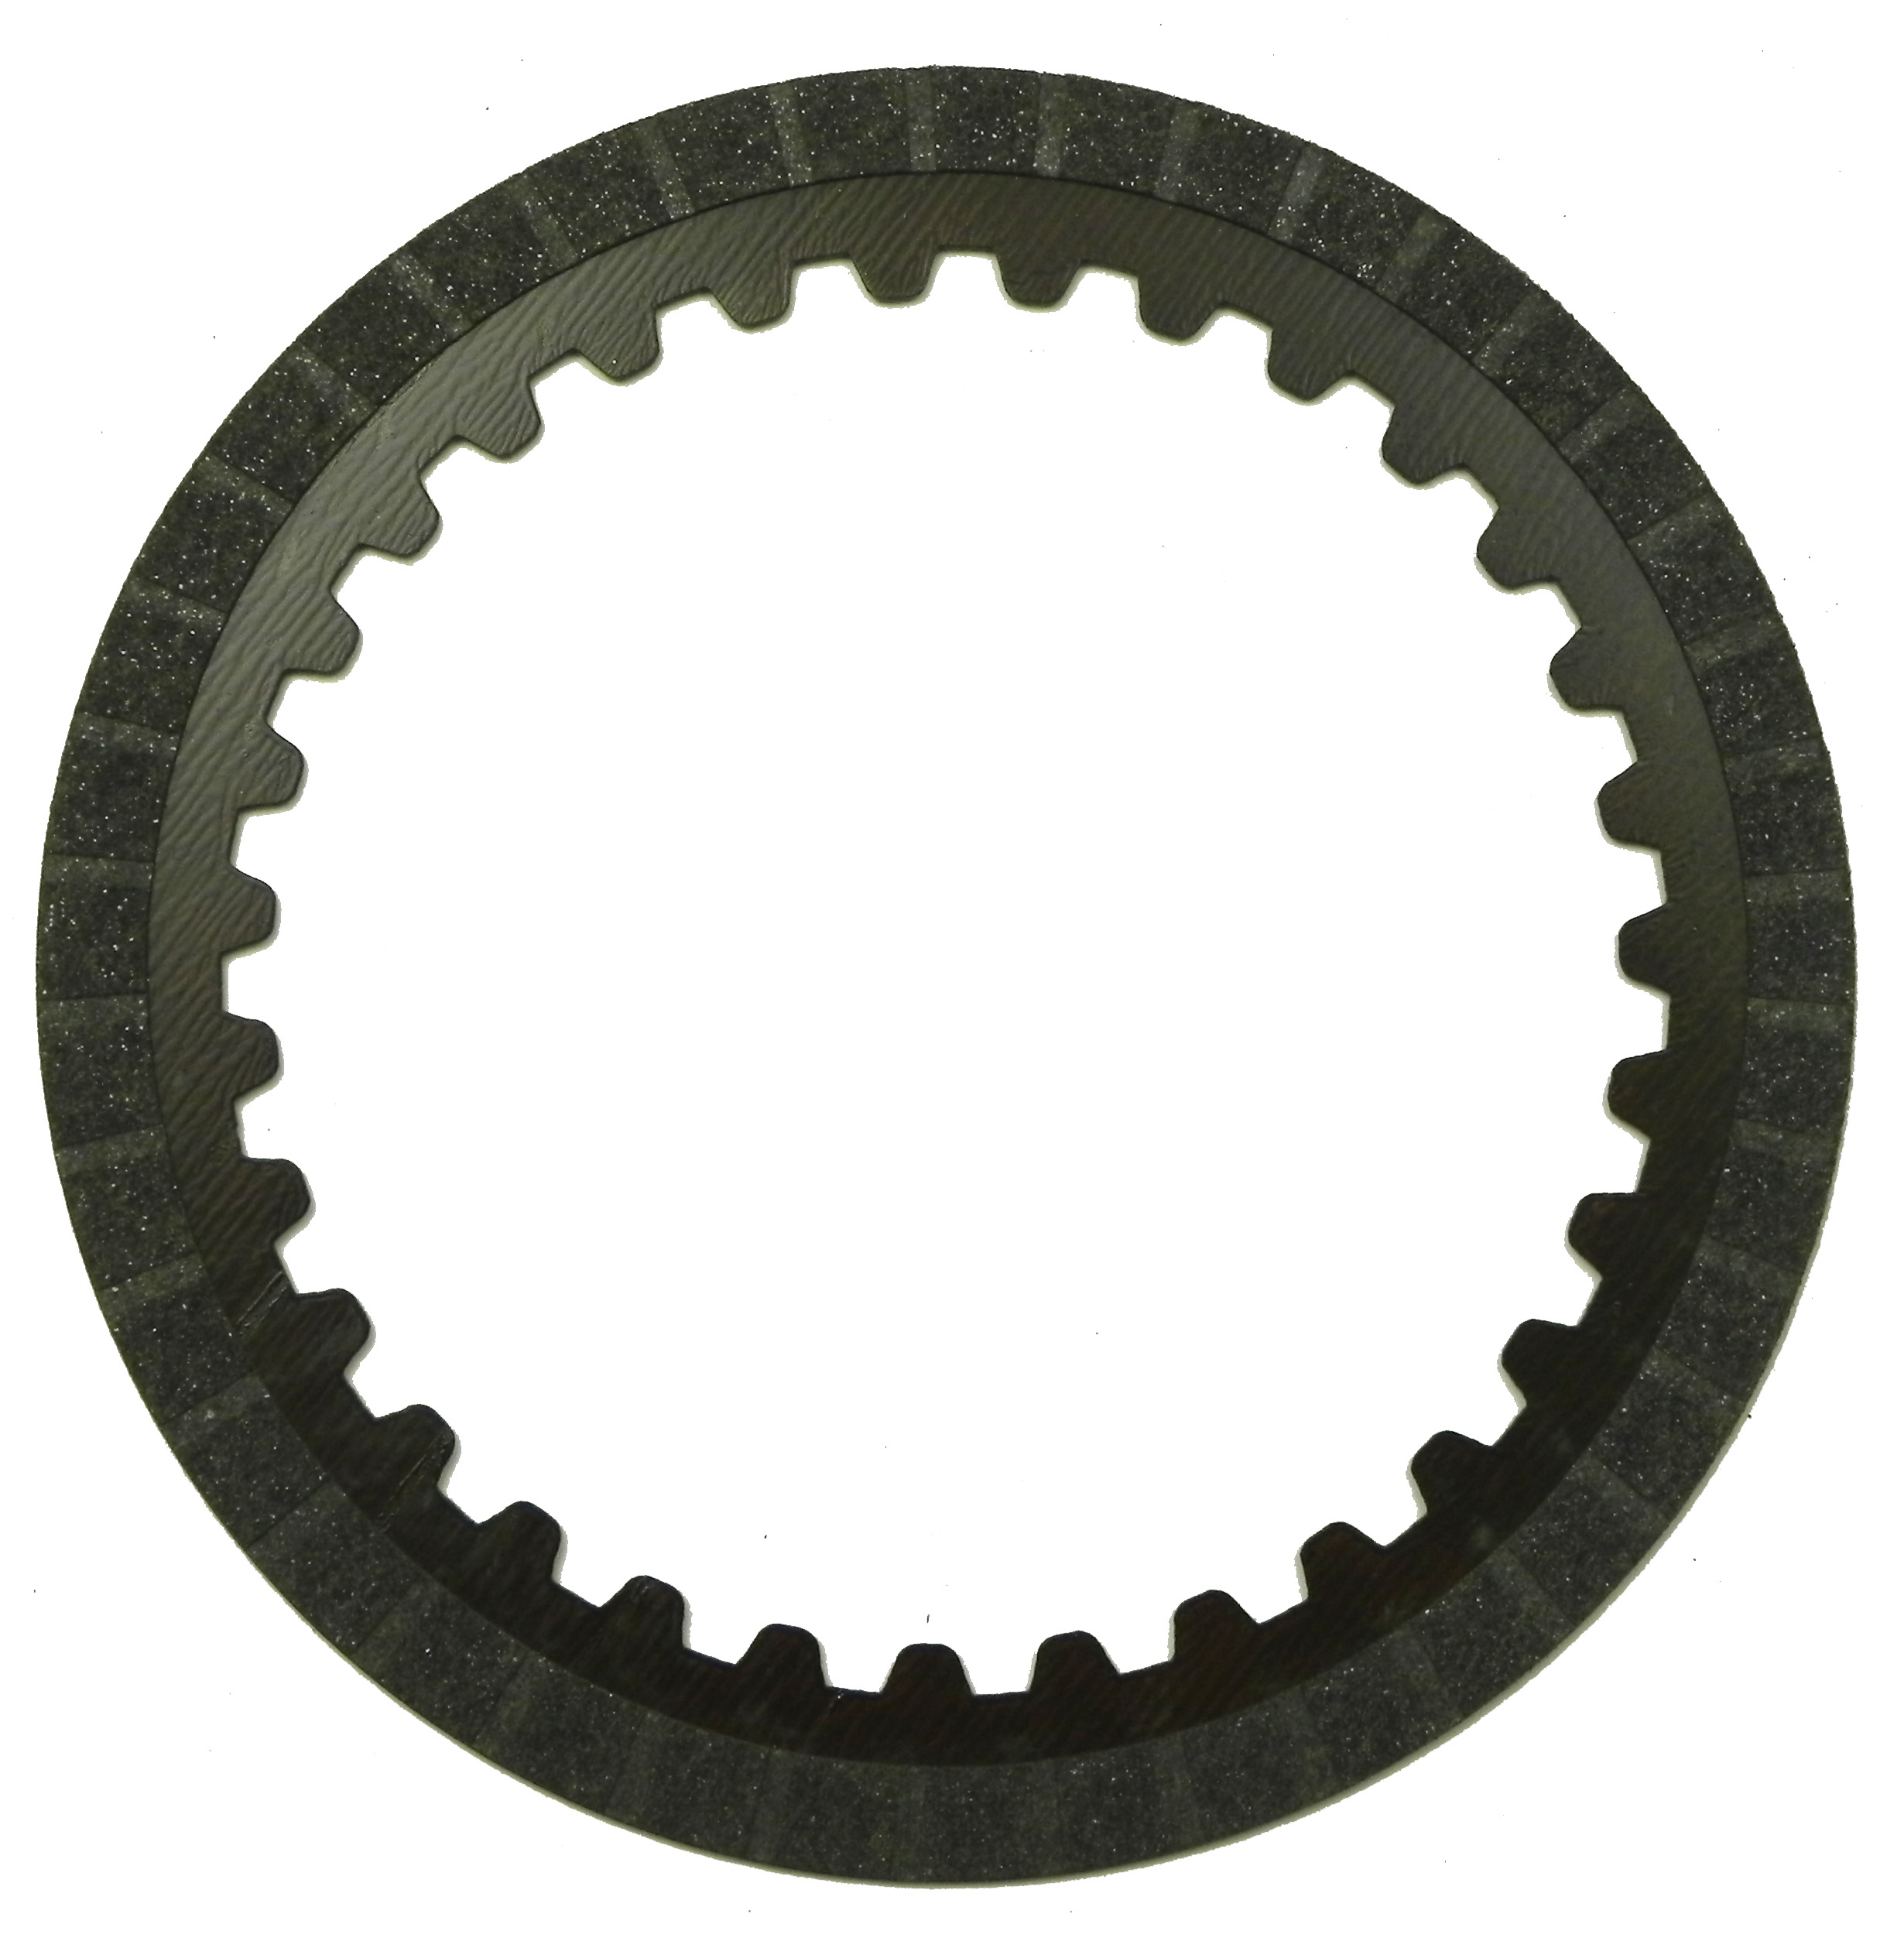 R558260 | 2007-ON Friction Clutch Plate High Energy Underdrive Low High Energy